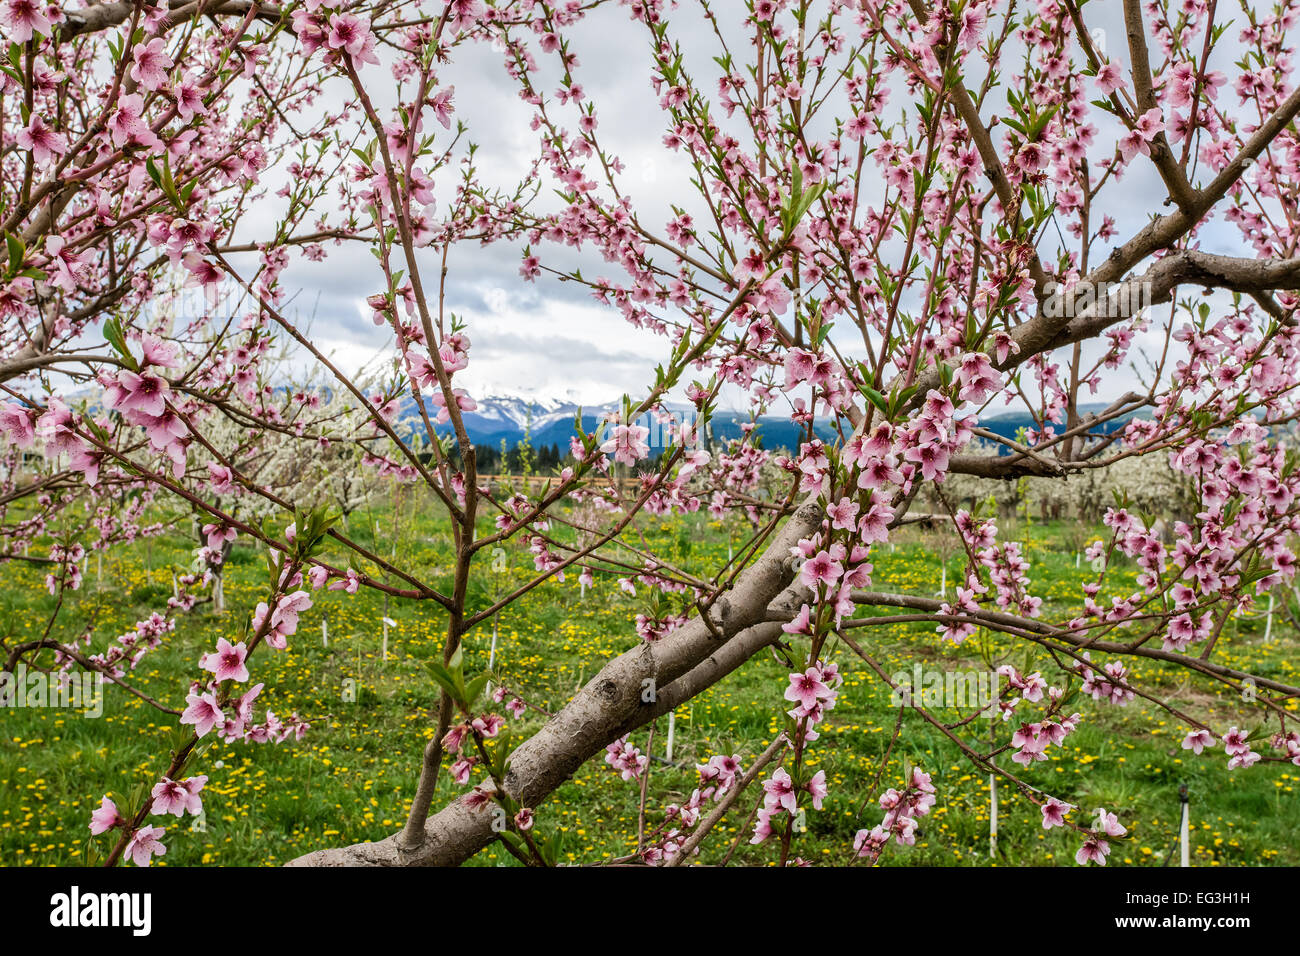 Close-up of an apple tree in blossom in the Fruit Loop near Hood River, Oregon, USA - Stock Image